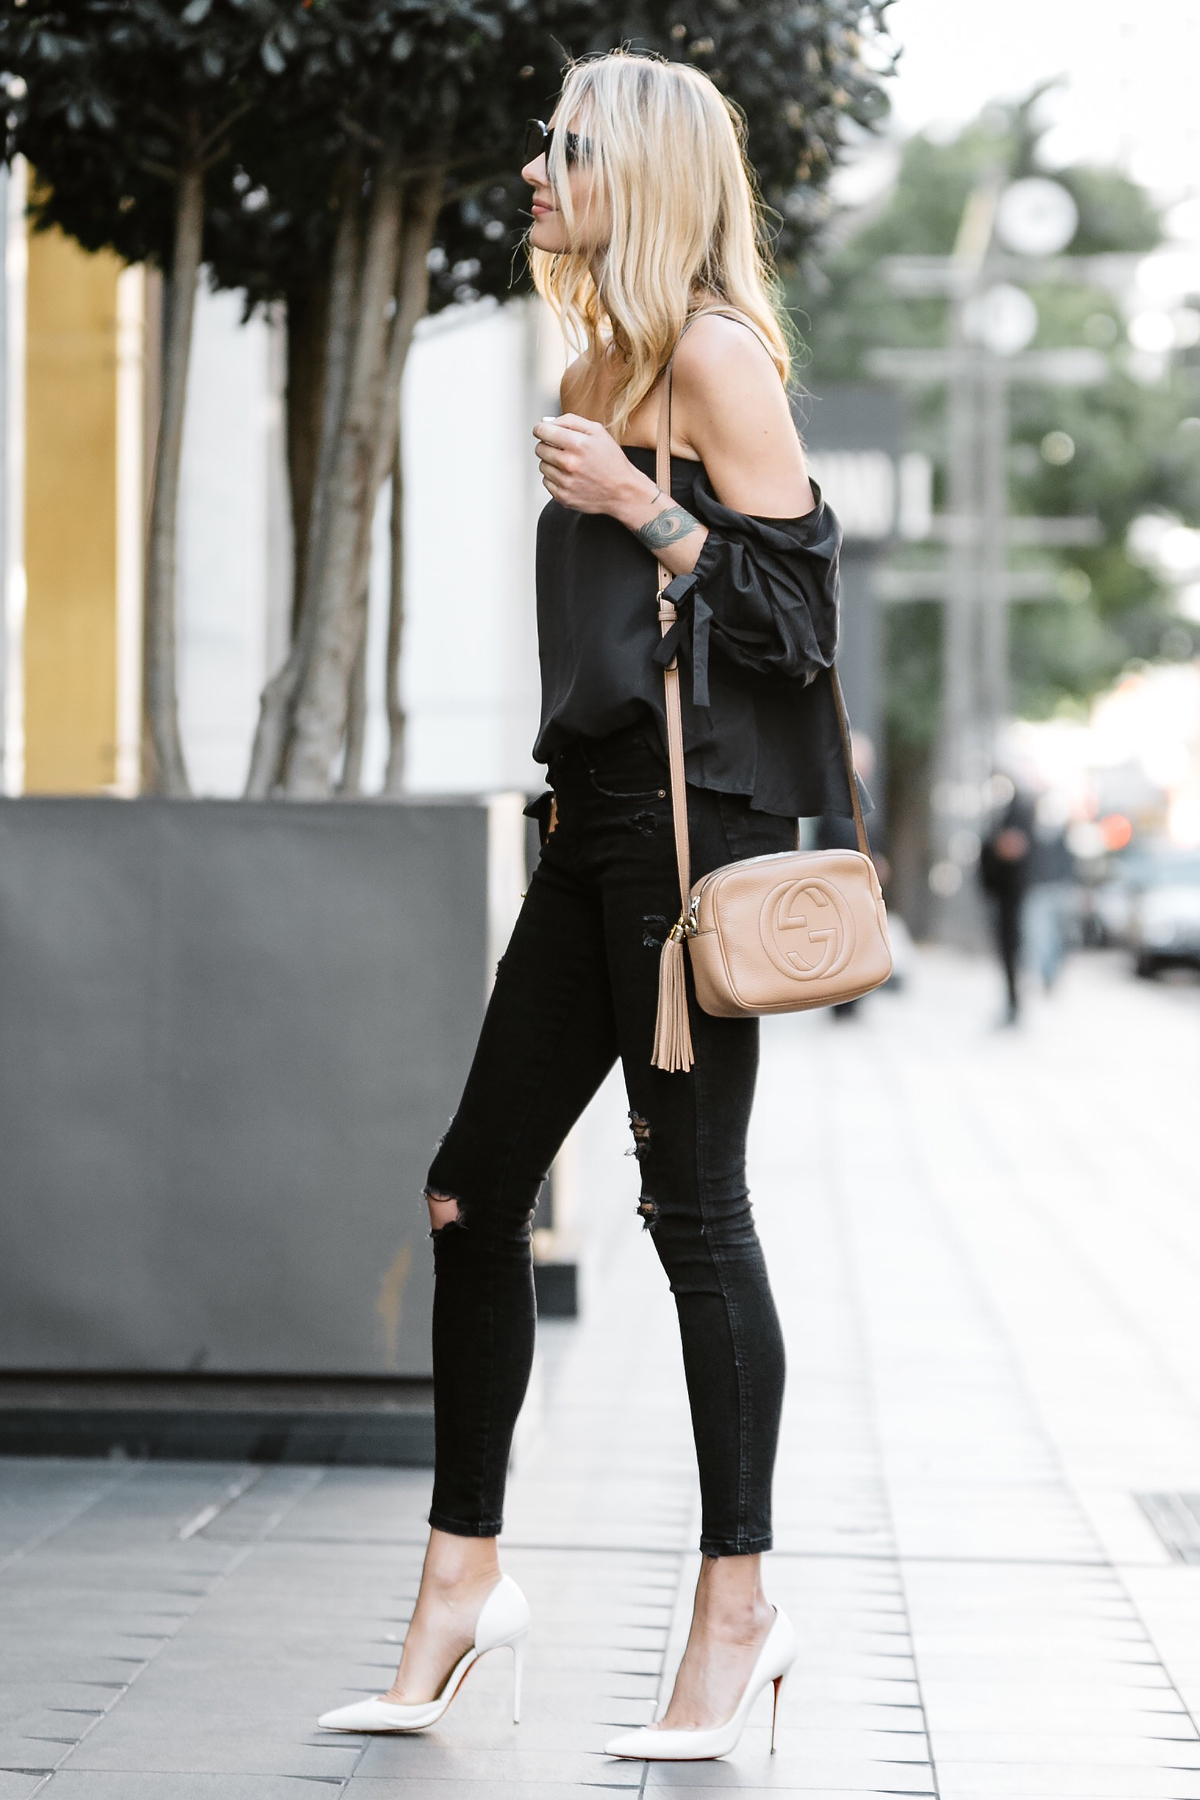 Fashion Jackson, Dallas Blogger, Fashion Blogger, Street Style, Club Monaco Liki Silk Top, Black Off-the-Shoulder Top, Black Ripped Skinny Jeans, Christian Louboutin White Pumps, Gucci Soho Disco Crossbody